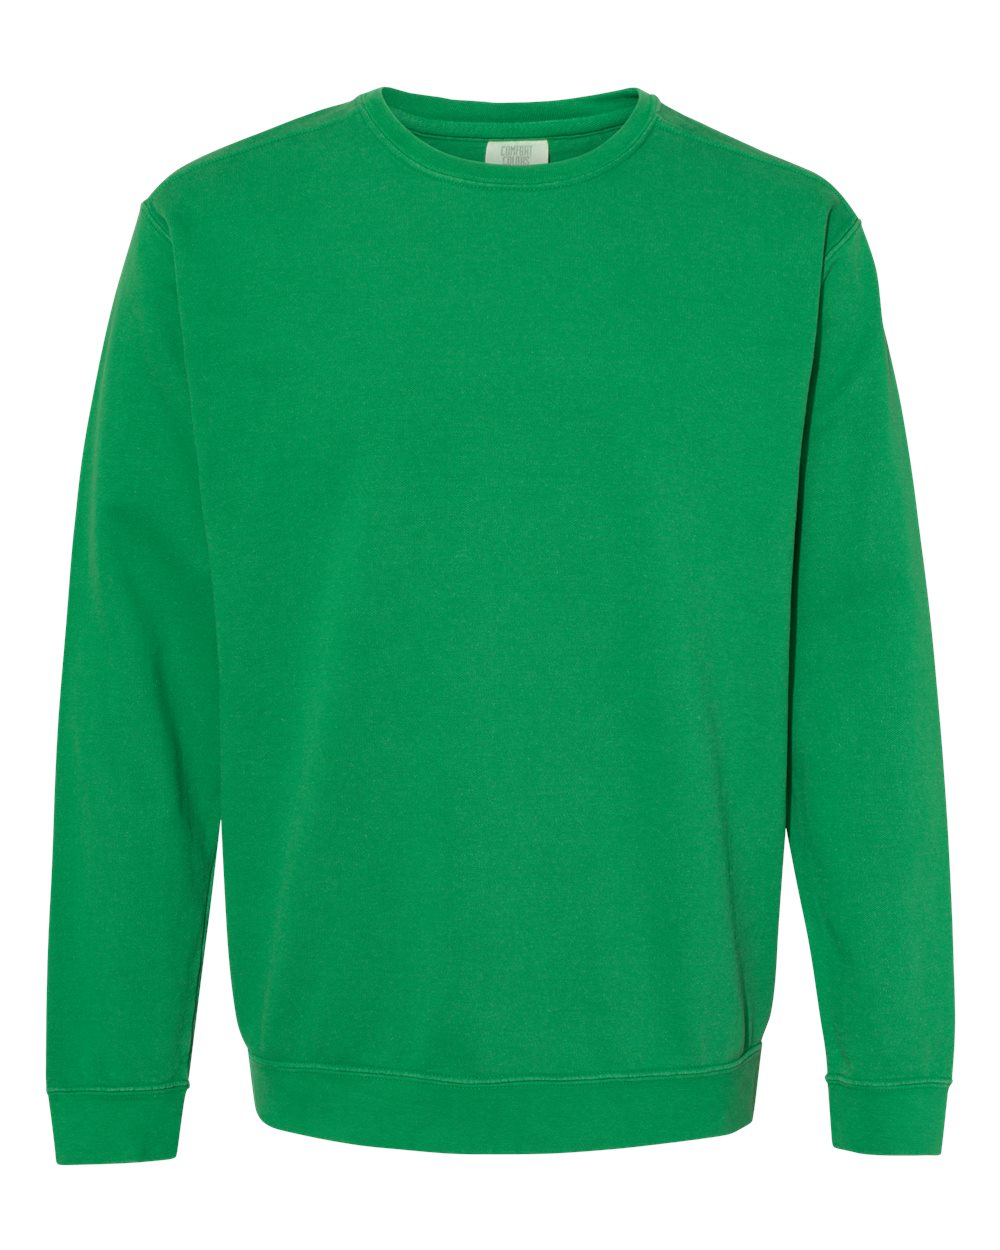 Comfort-Colors-Mens-Garment-Dyed-Ringspun-Crewneck-Sweatshirt-1566-up-to-3XL miniature 21